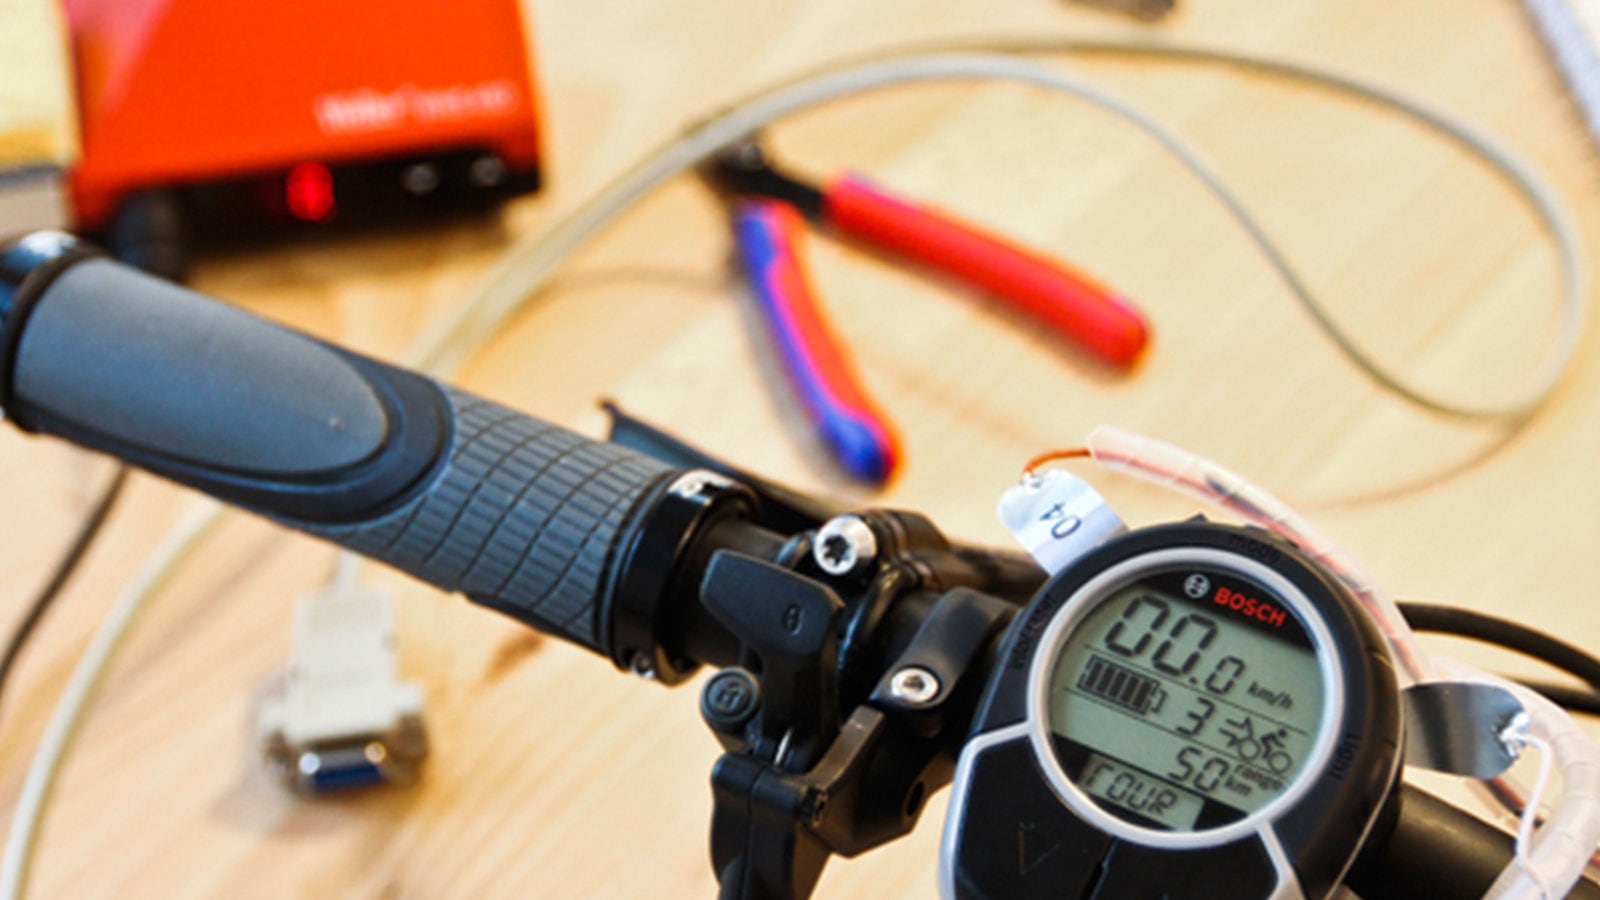 Making things talk: I want to hack my bicycle